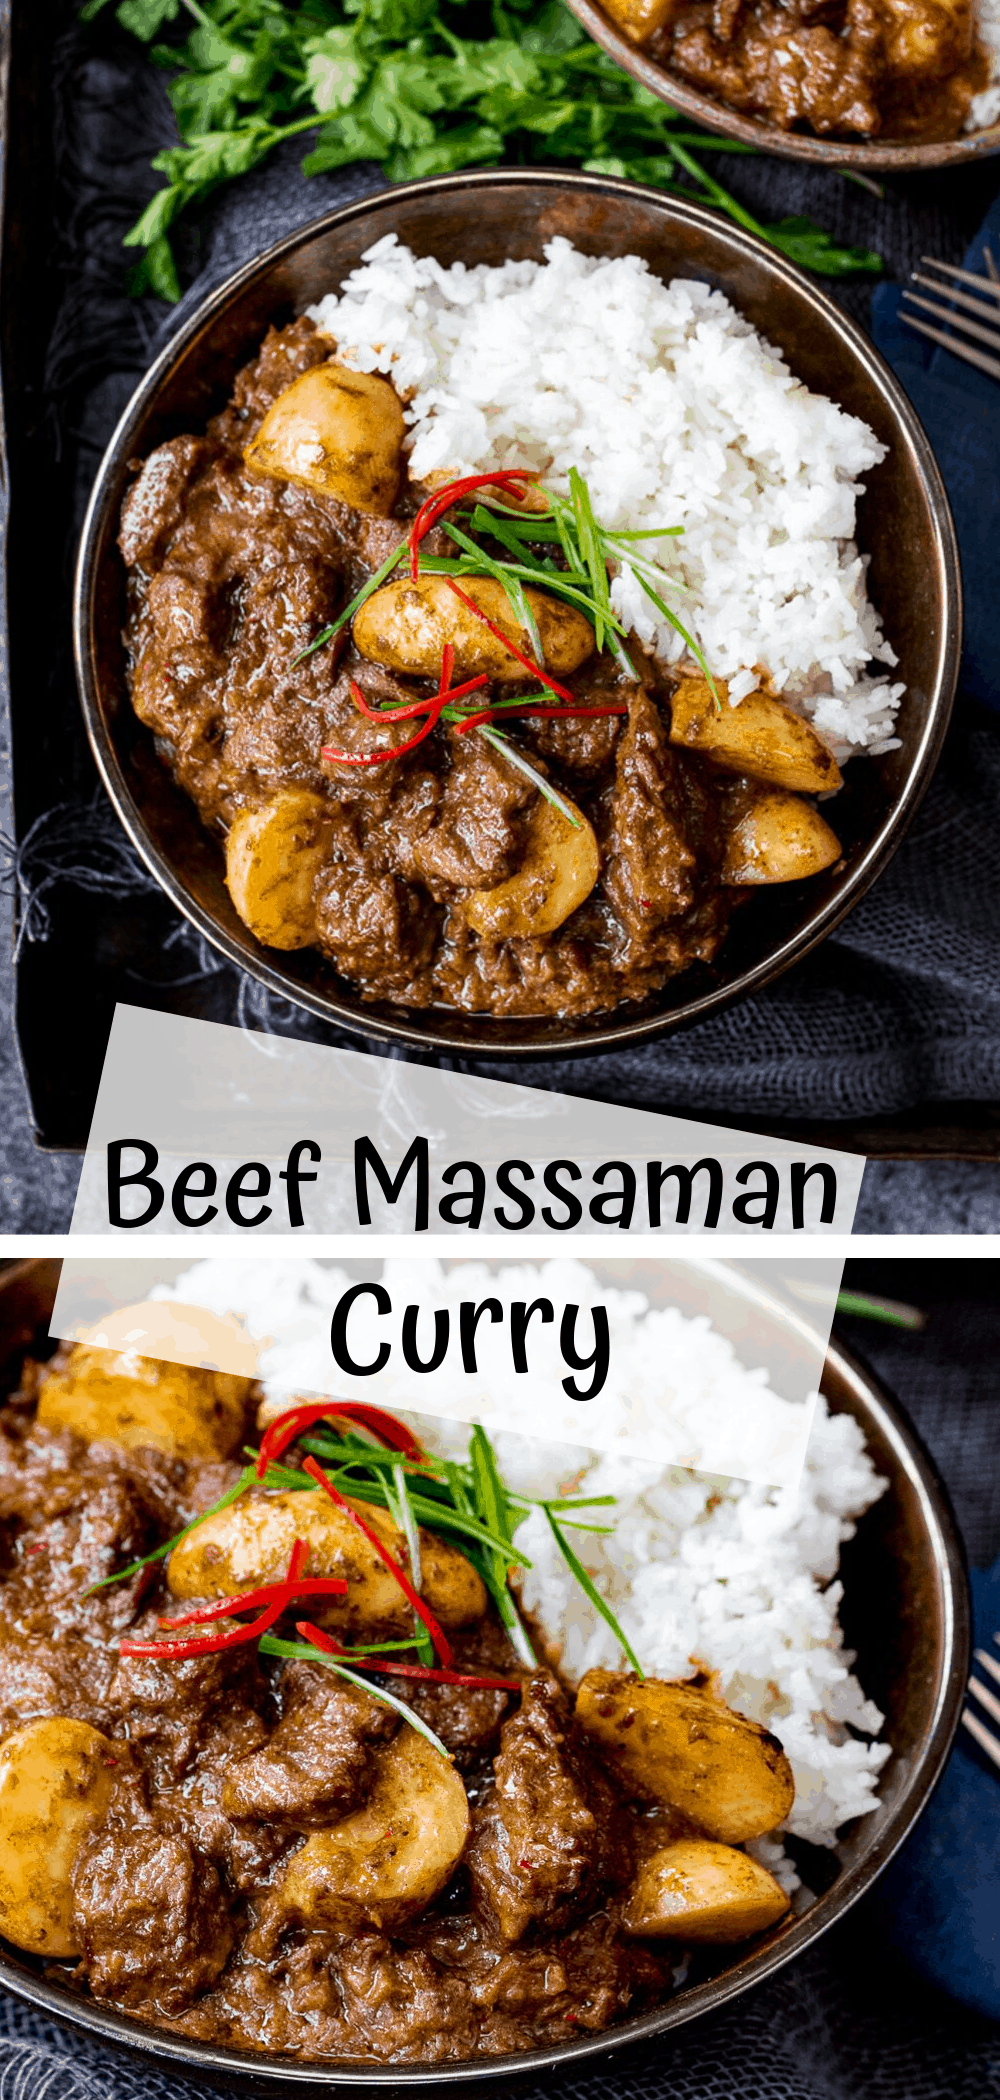 Slow Cooked Beef Massaman Curry - Rich, fall-apart beef in a spicy homemade sauce with new potatoes. Perfect comfort food! #massaman #beefcurry #beefmassaman #coconutcurry #thaicurry #slowcookedcurry #homemadesauce